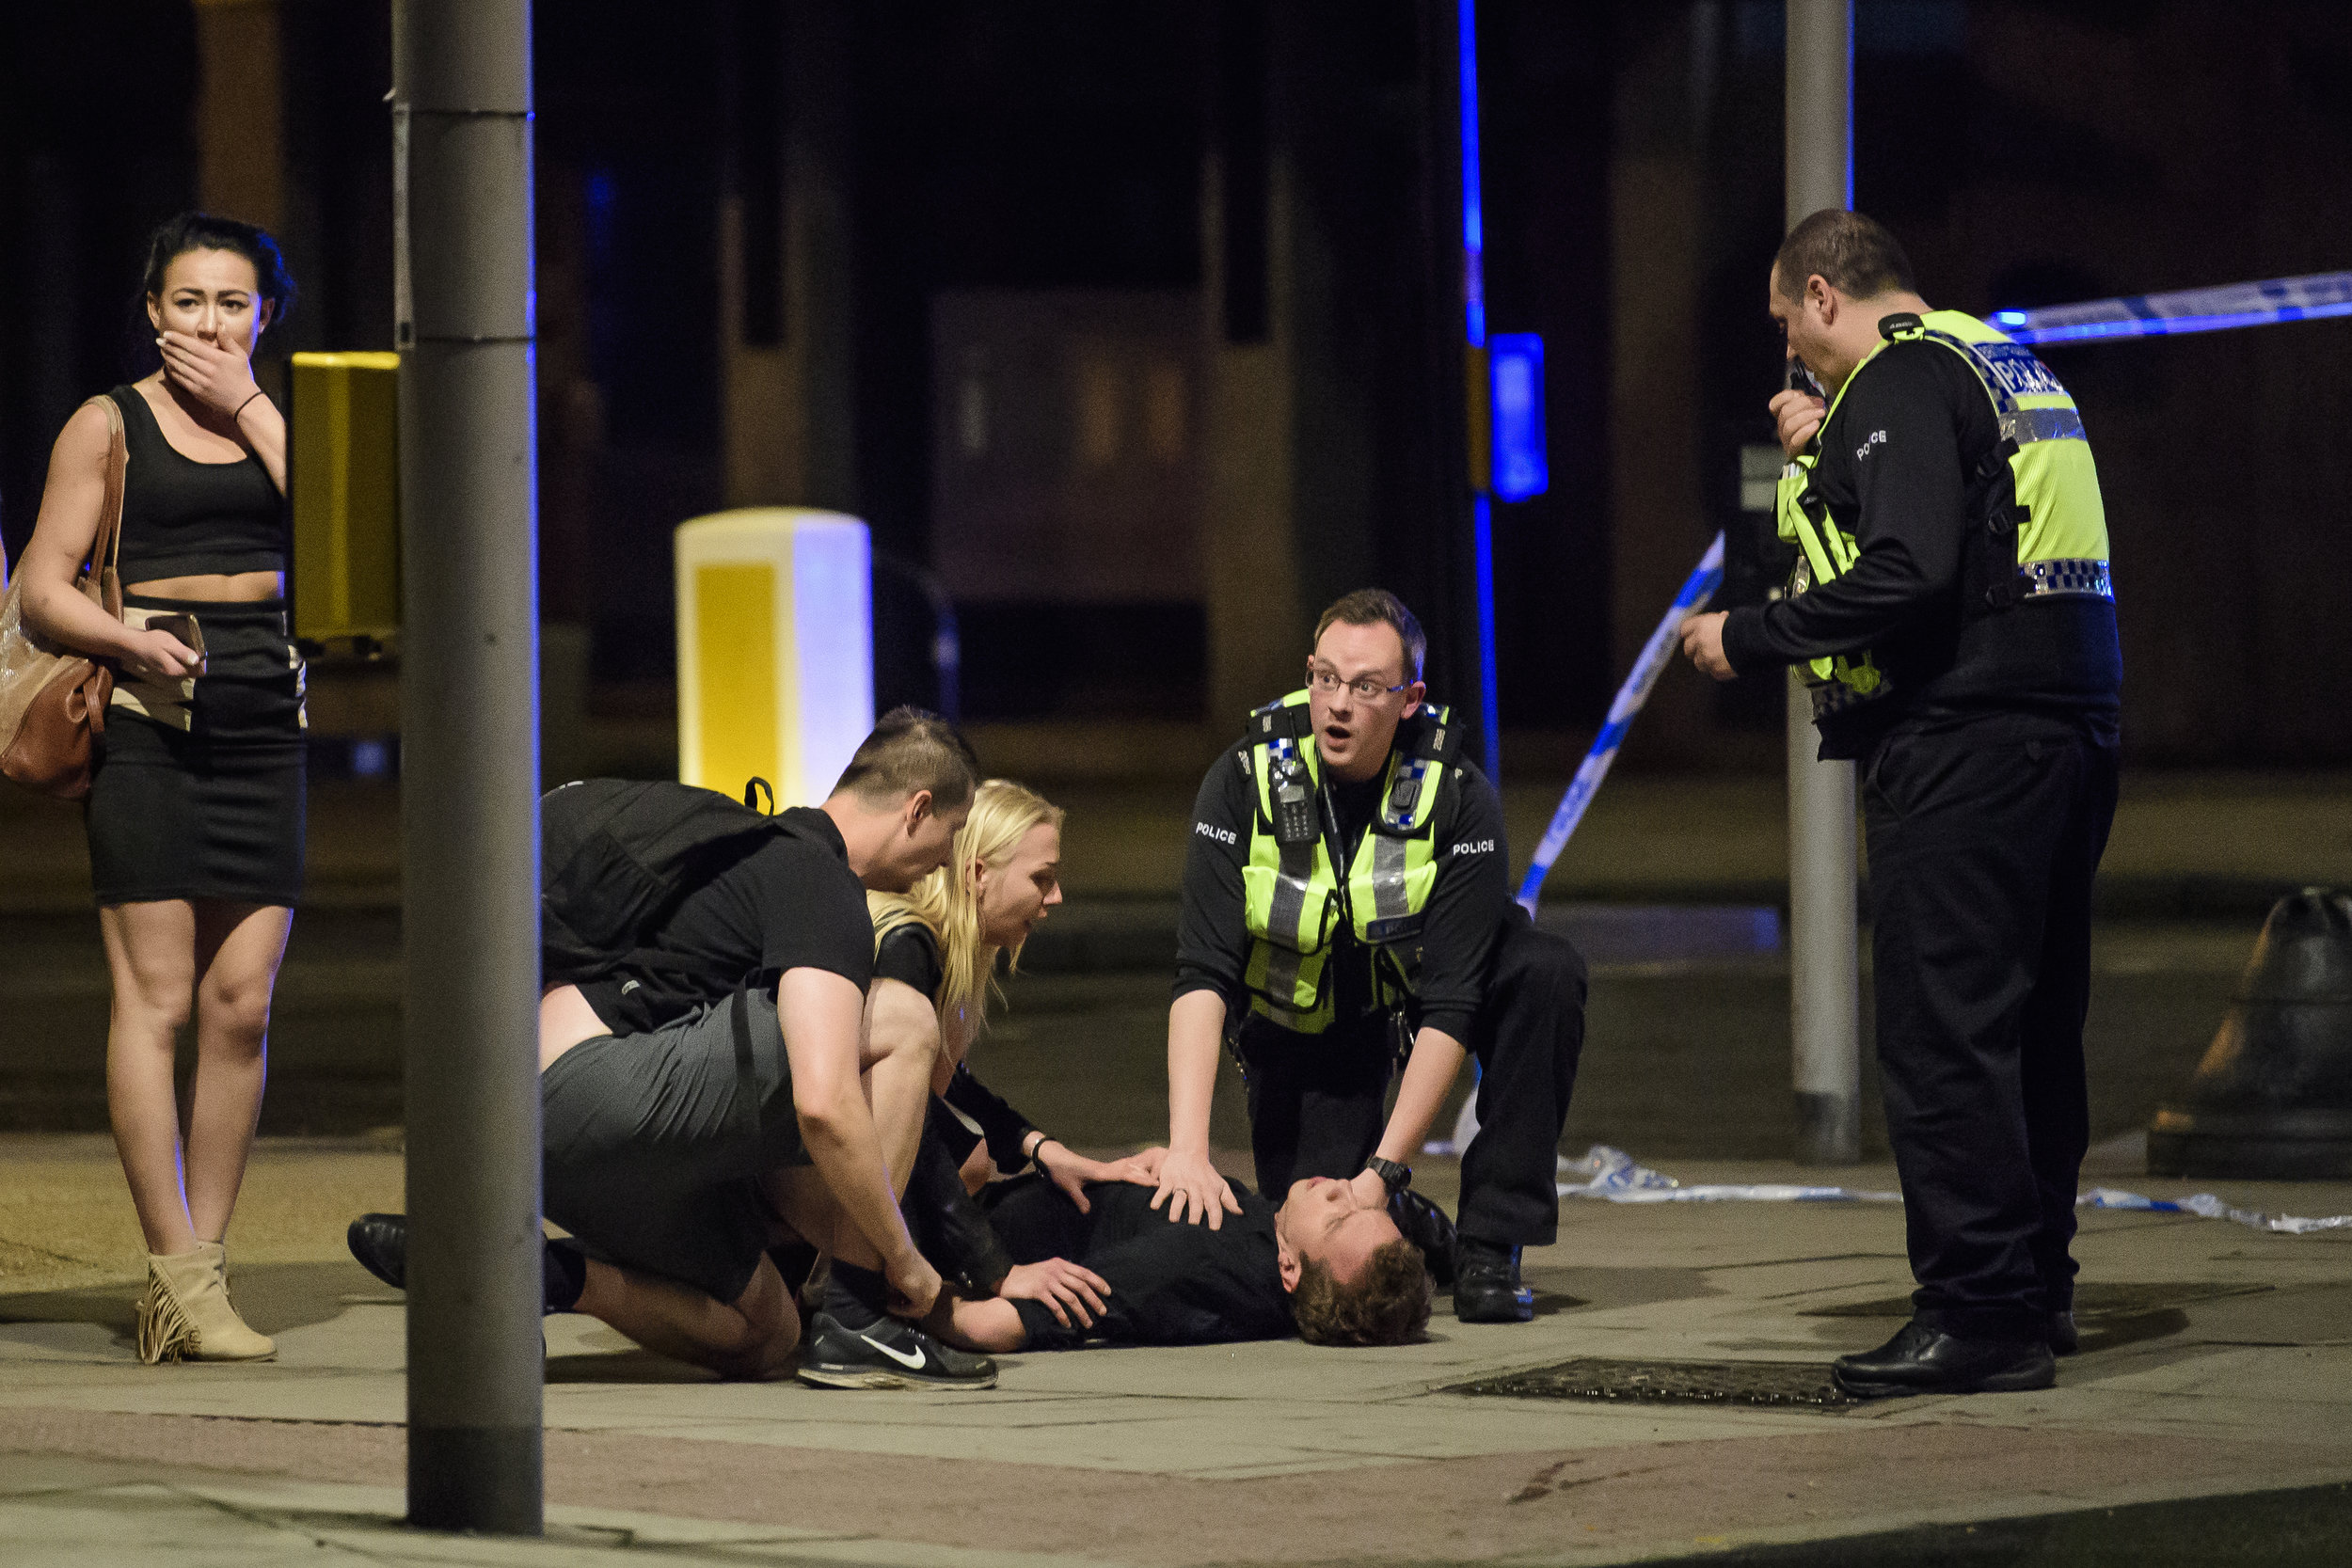 Police officers tend to a man collapsed on the floor near London Bridge, after a vehicle had been deliberately driven at pedestrians crossing the bridge during a terrorist incident.Photo by Ben Cawthra  03 June 2017